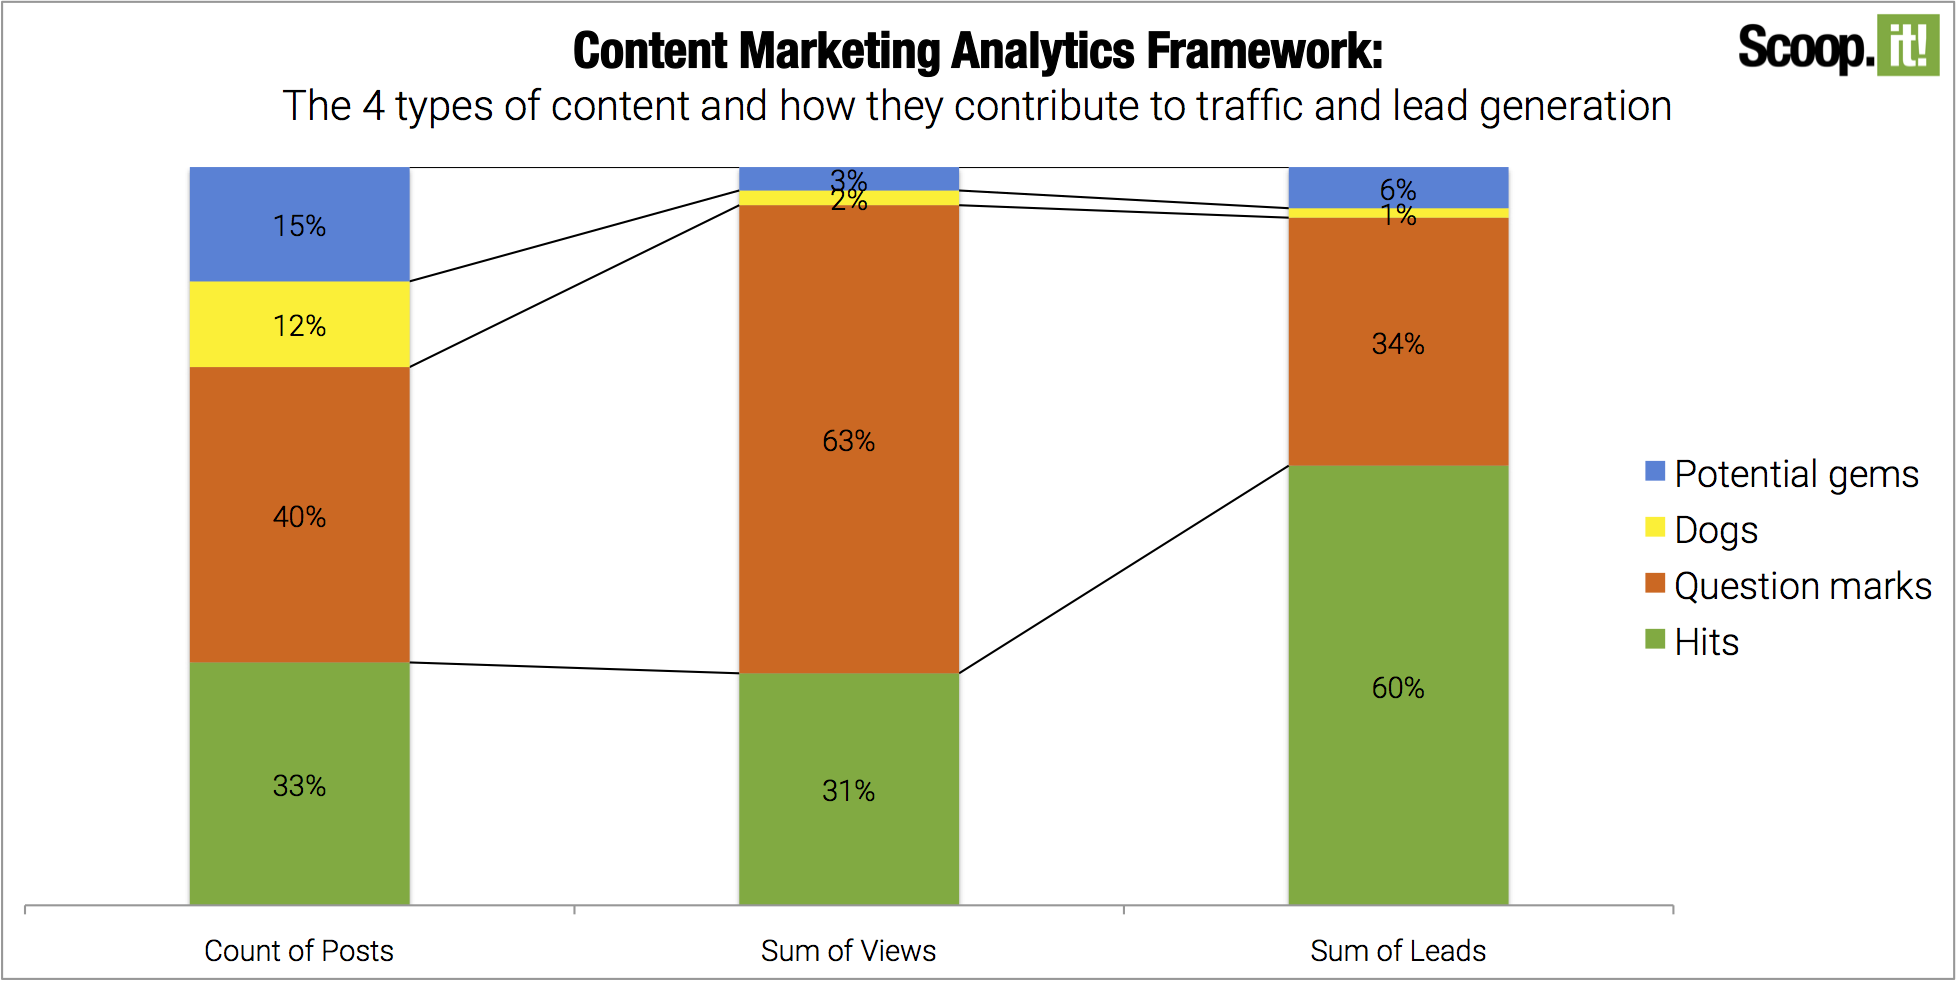 Content Marketing Analytics Framework for ROI